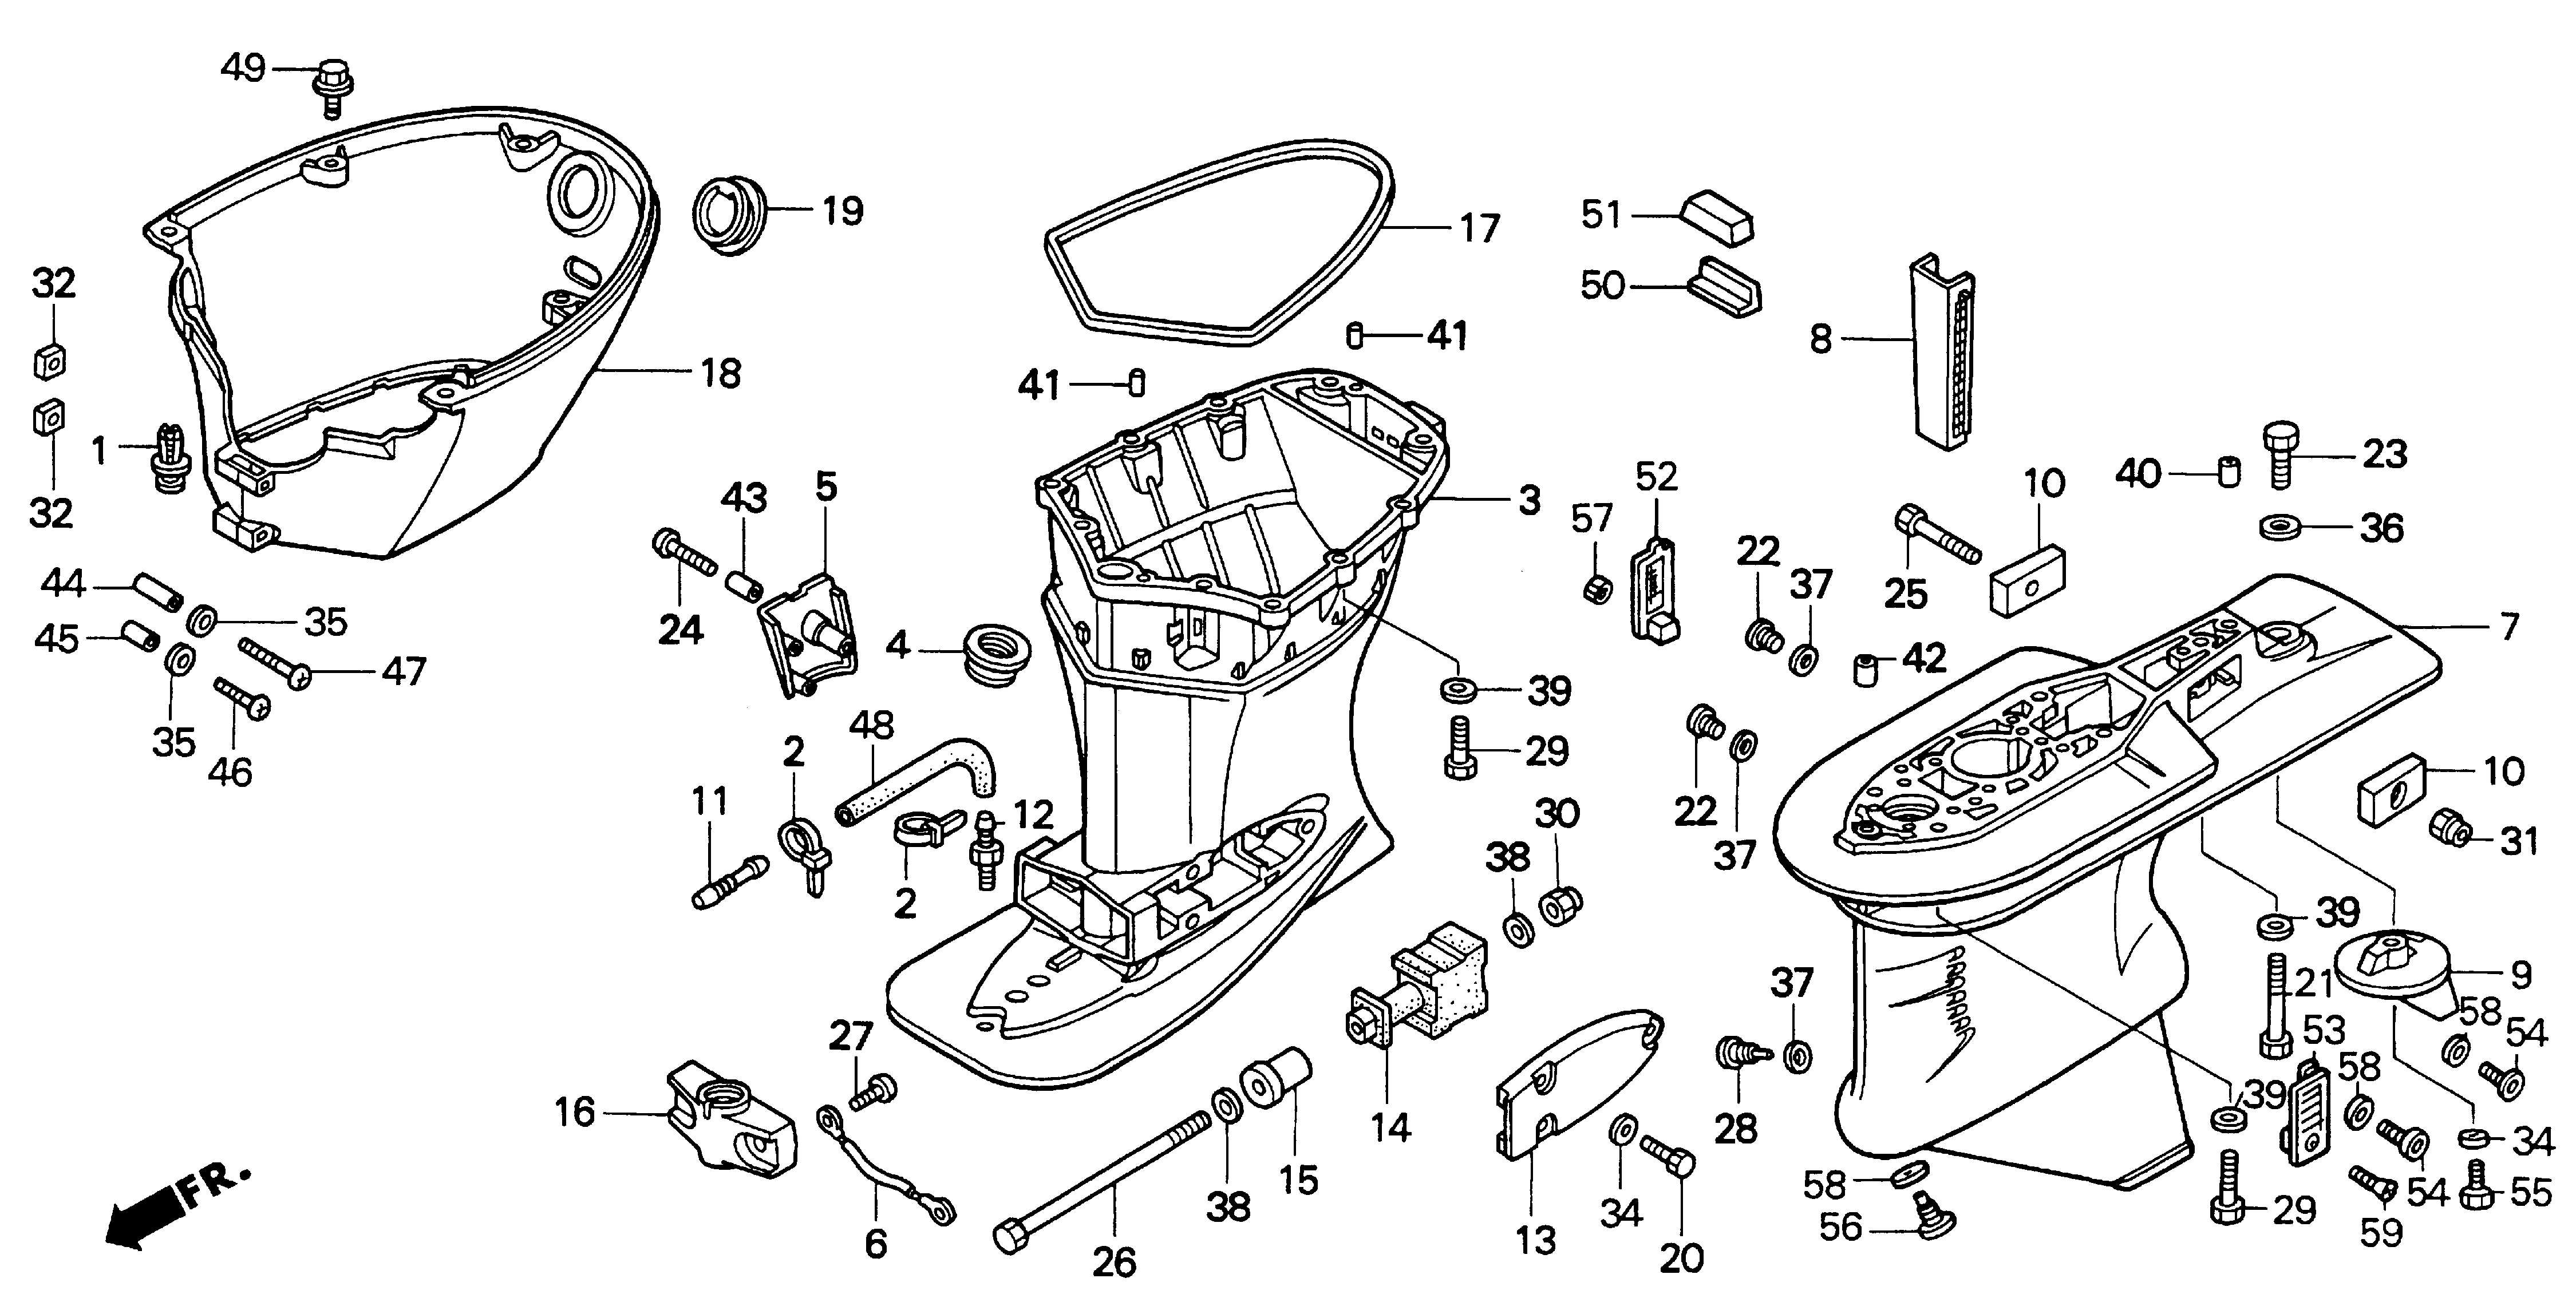 Electrical Diagram For Honda Bf90a Outboard Motor